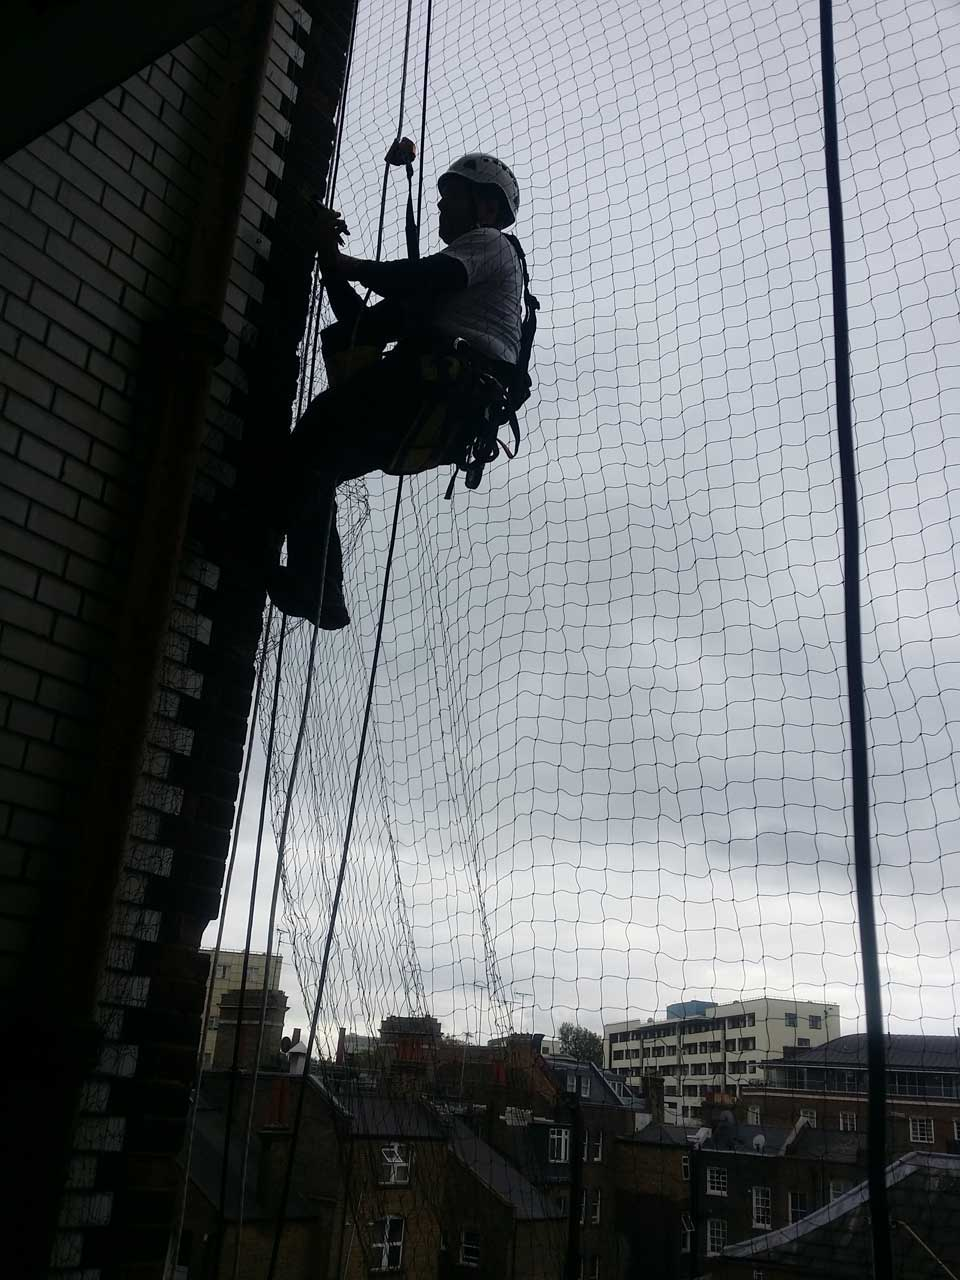 rope access technician installing bird netting on a 10 storey building in Central London